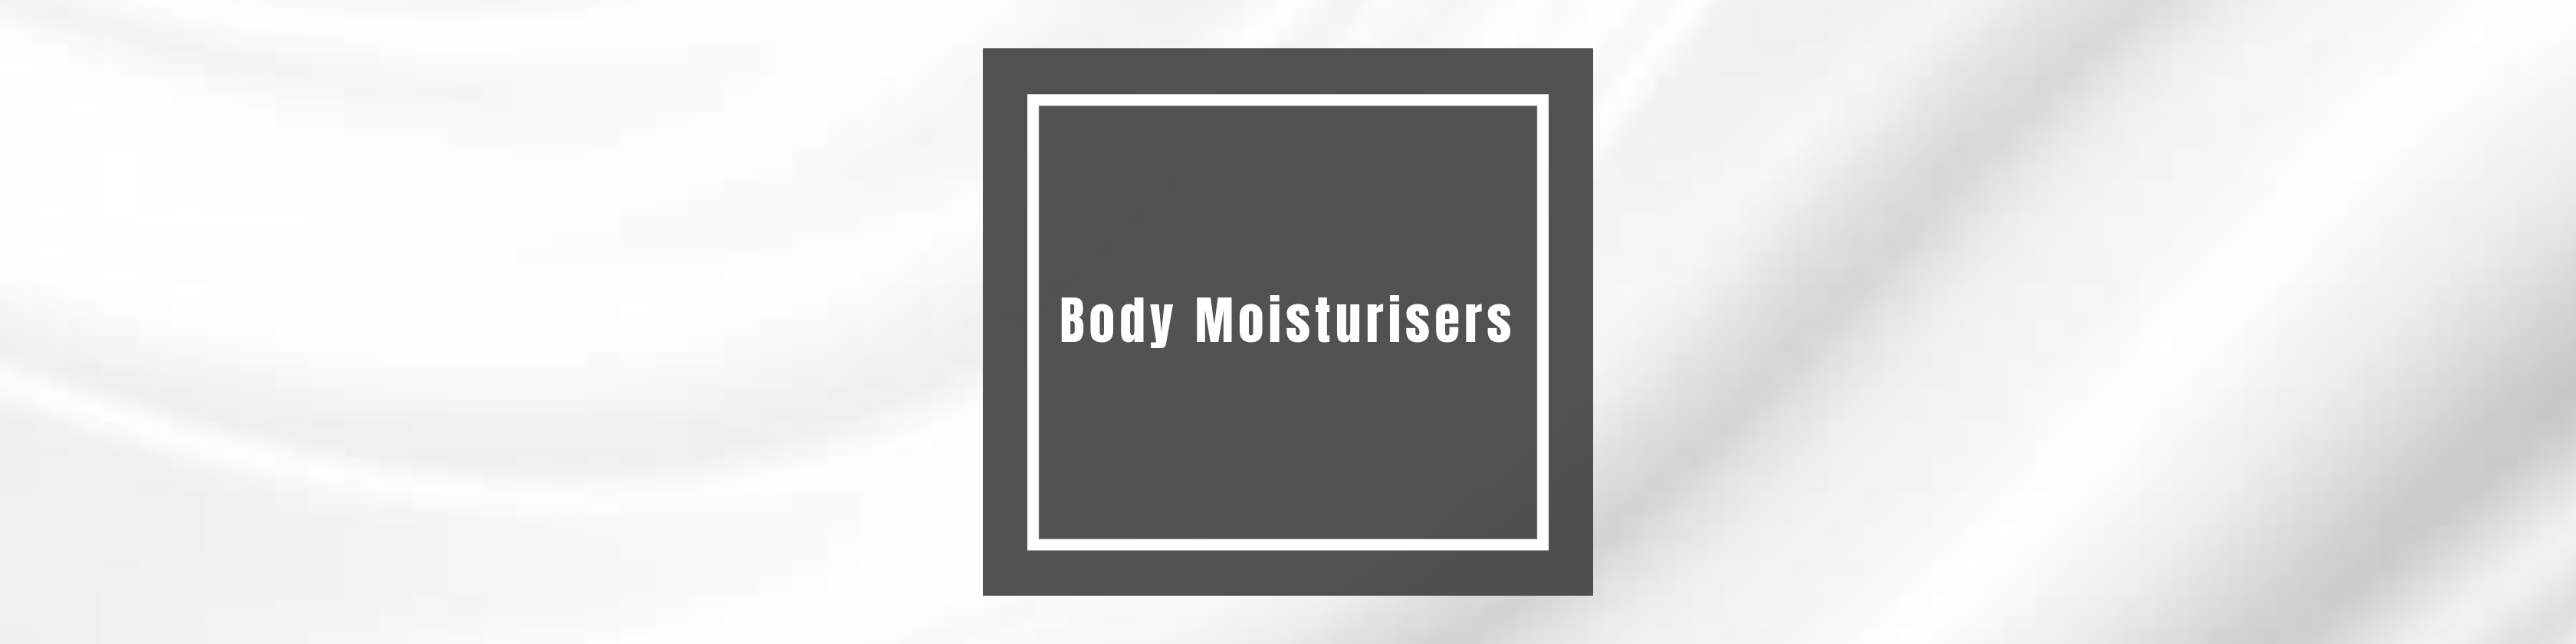 Shop Body Moisturisers at Glamabox Cosmetix ☆ Body Moisturisers For The Smoothest Skin Of Your Life. Find all the Cosmetics you need online right here and shop now, pay later with Afterpay | Humm | Laybuy. Free Shipping*